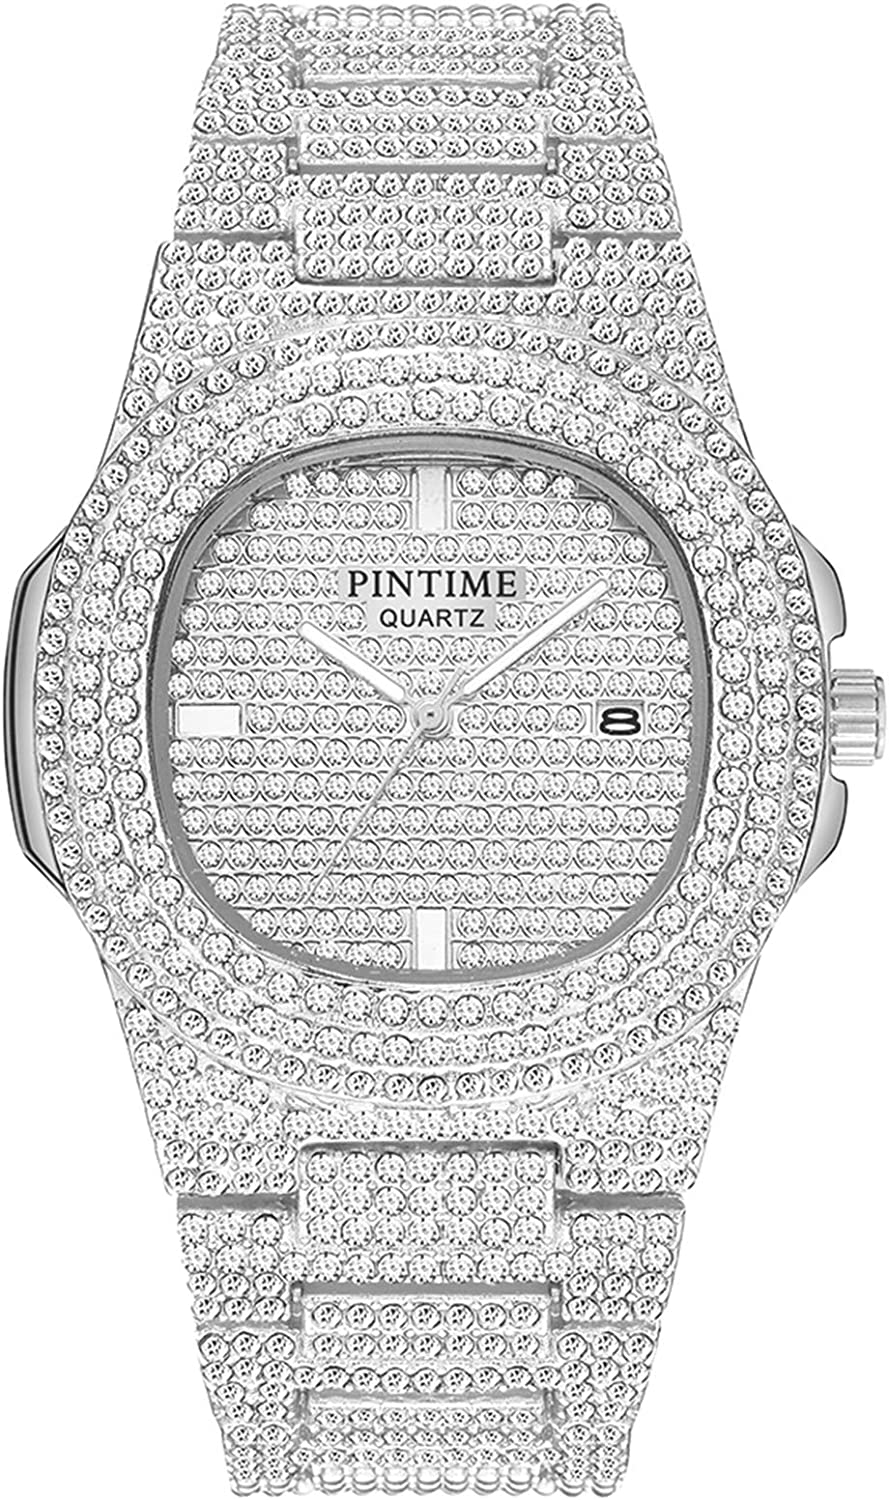 Luxury Mens/Womens Unisex Crystal Watch Bling Iced-Out Watch Oblong Silver/Gold Wristwatch Fashion Diamond Quartz Analog Watch with Stainless Steel Bracelet